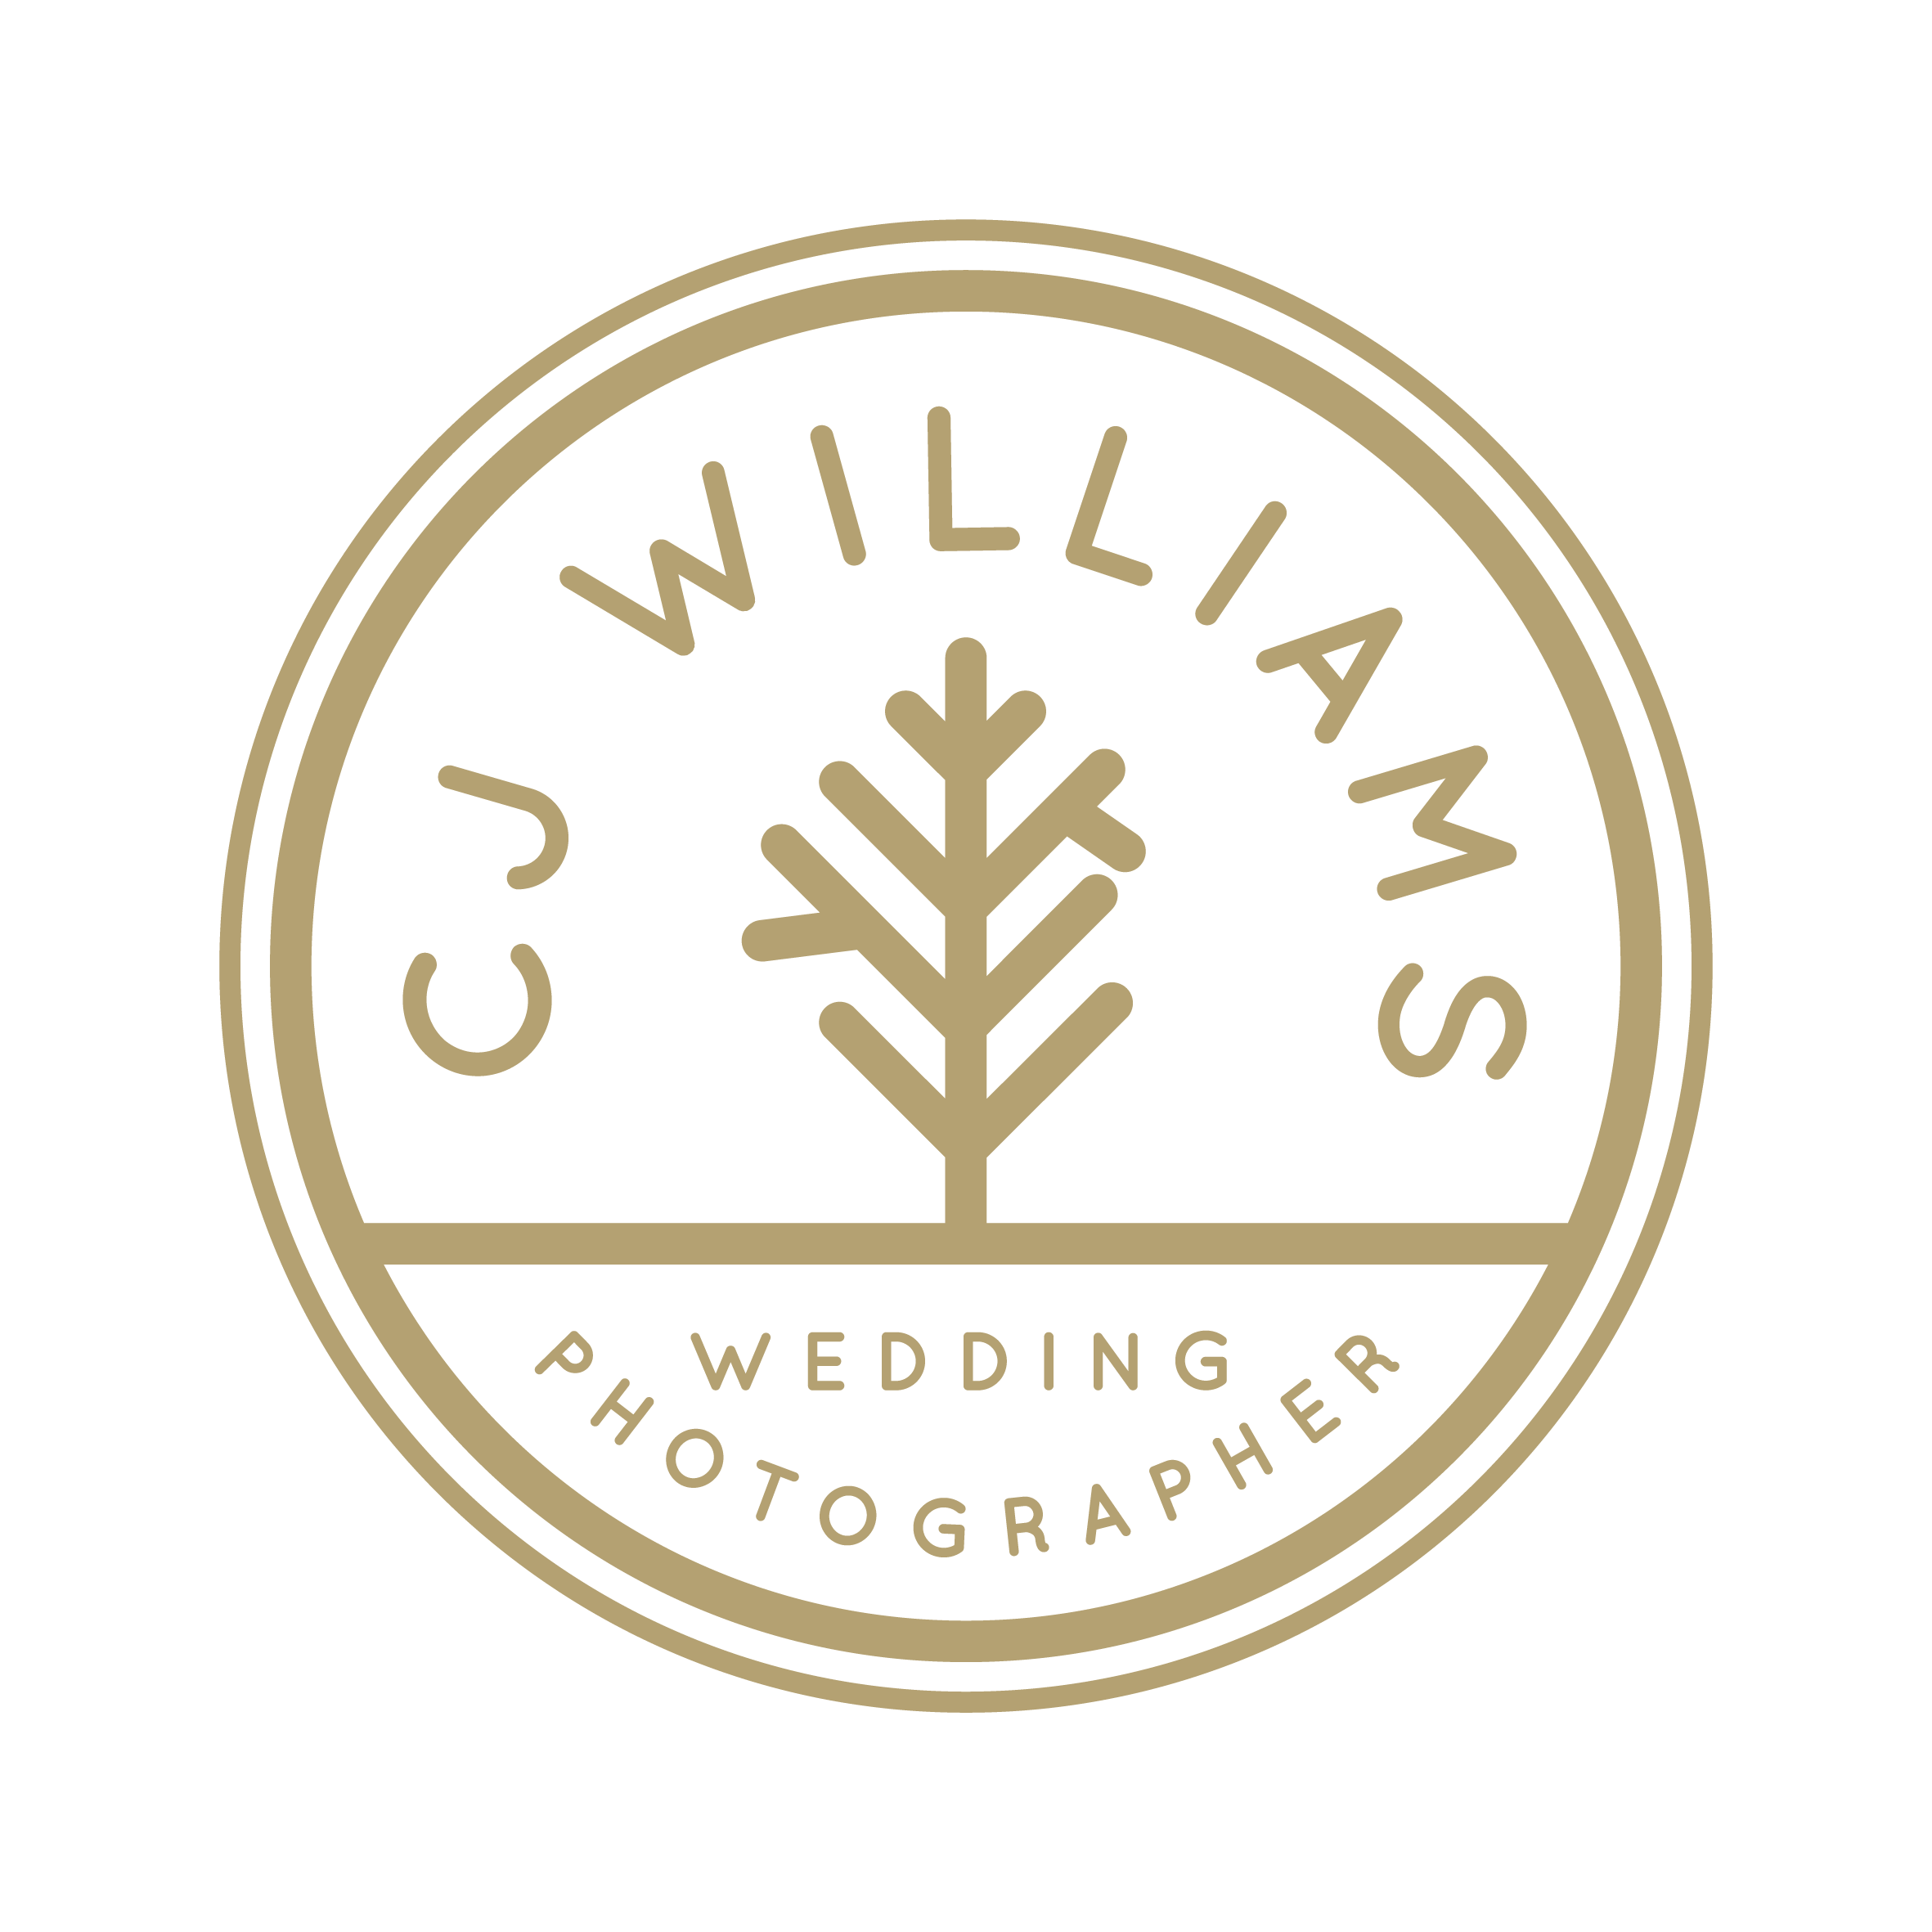 CJ Williams Photography